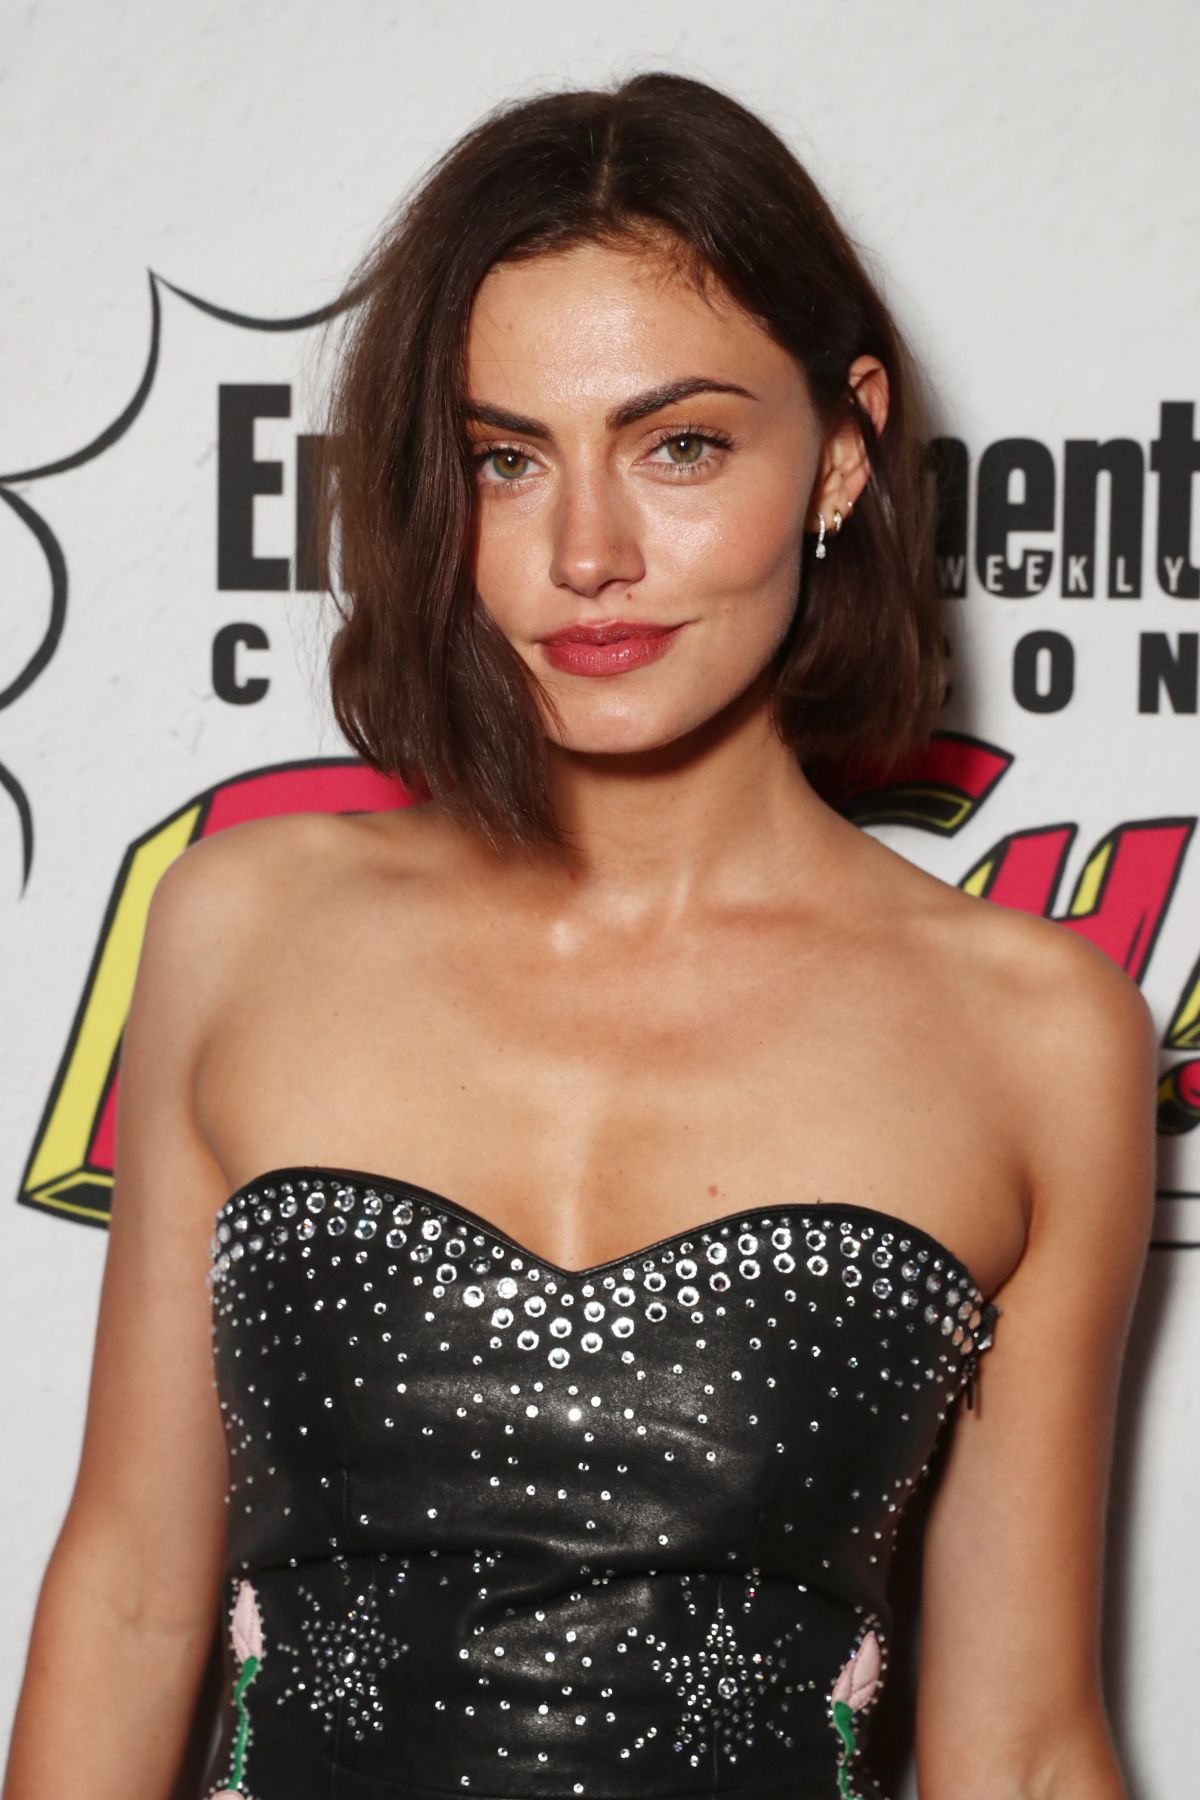 PHOEBE TONKIN at Entertainment Weekly's Comic-con Party in San Diego 07/22/2017